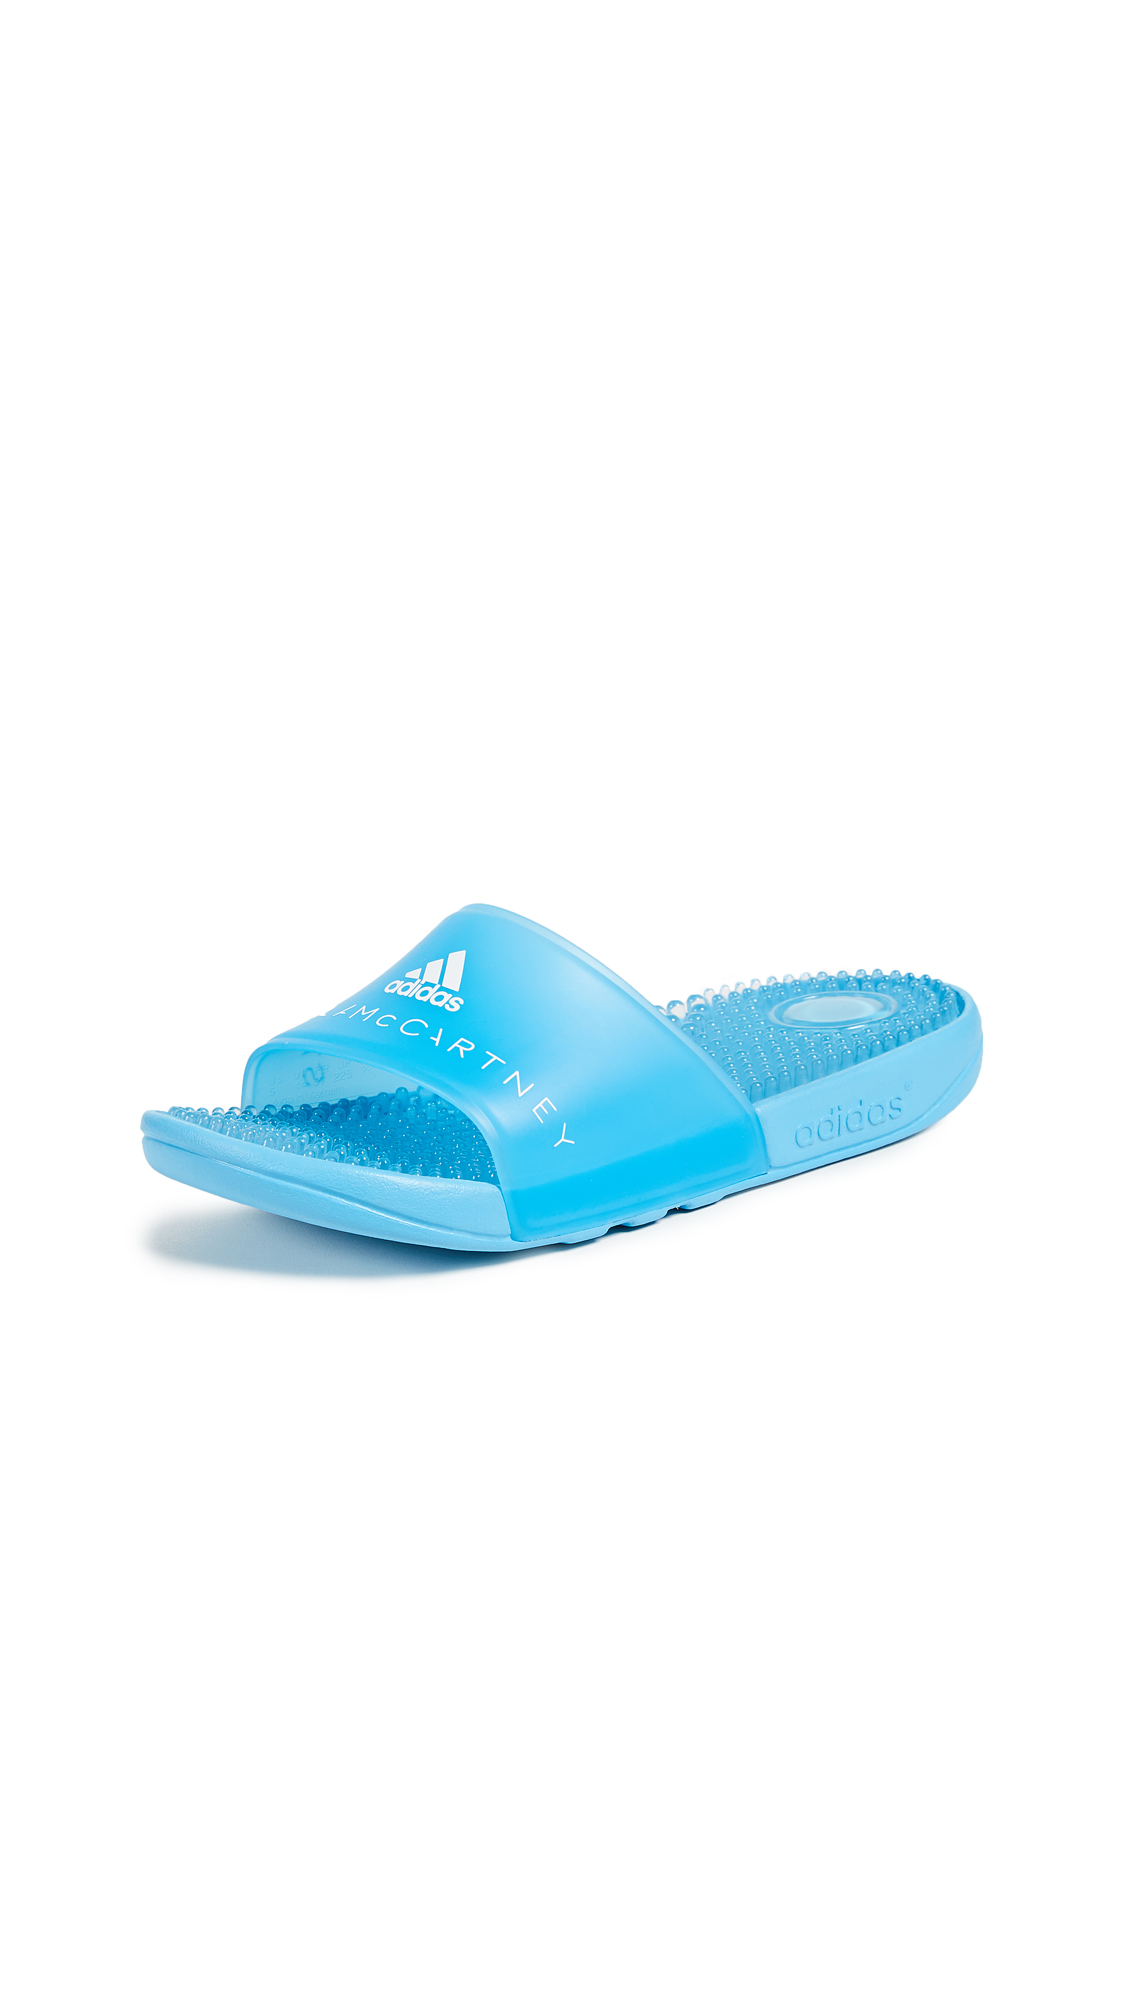 adidas by Stella McCartney Adissage W Slides - Mirror Blue/Mirror Blue/White